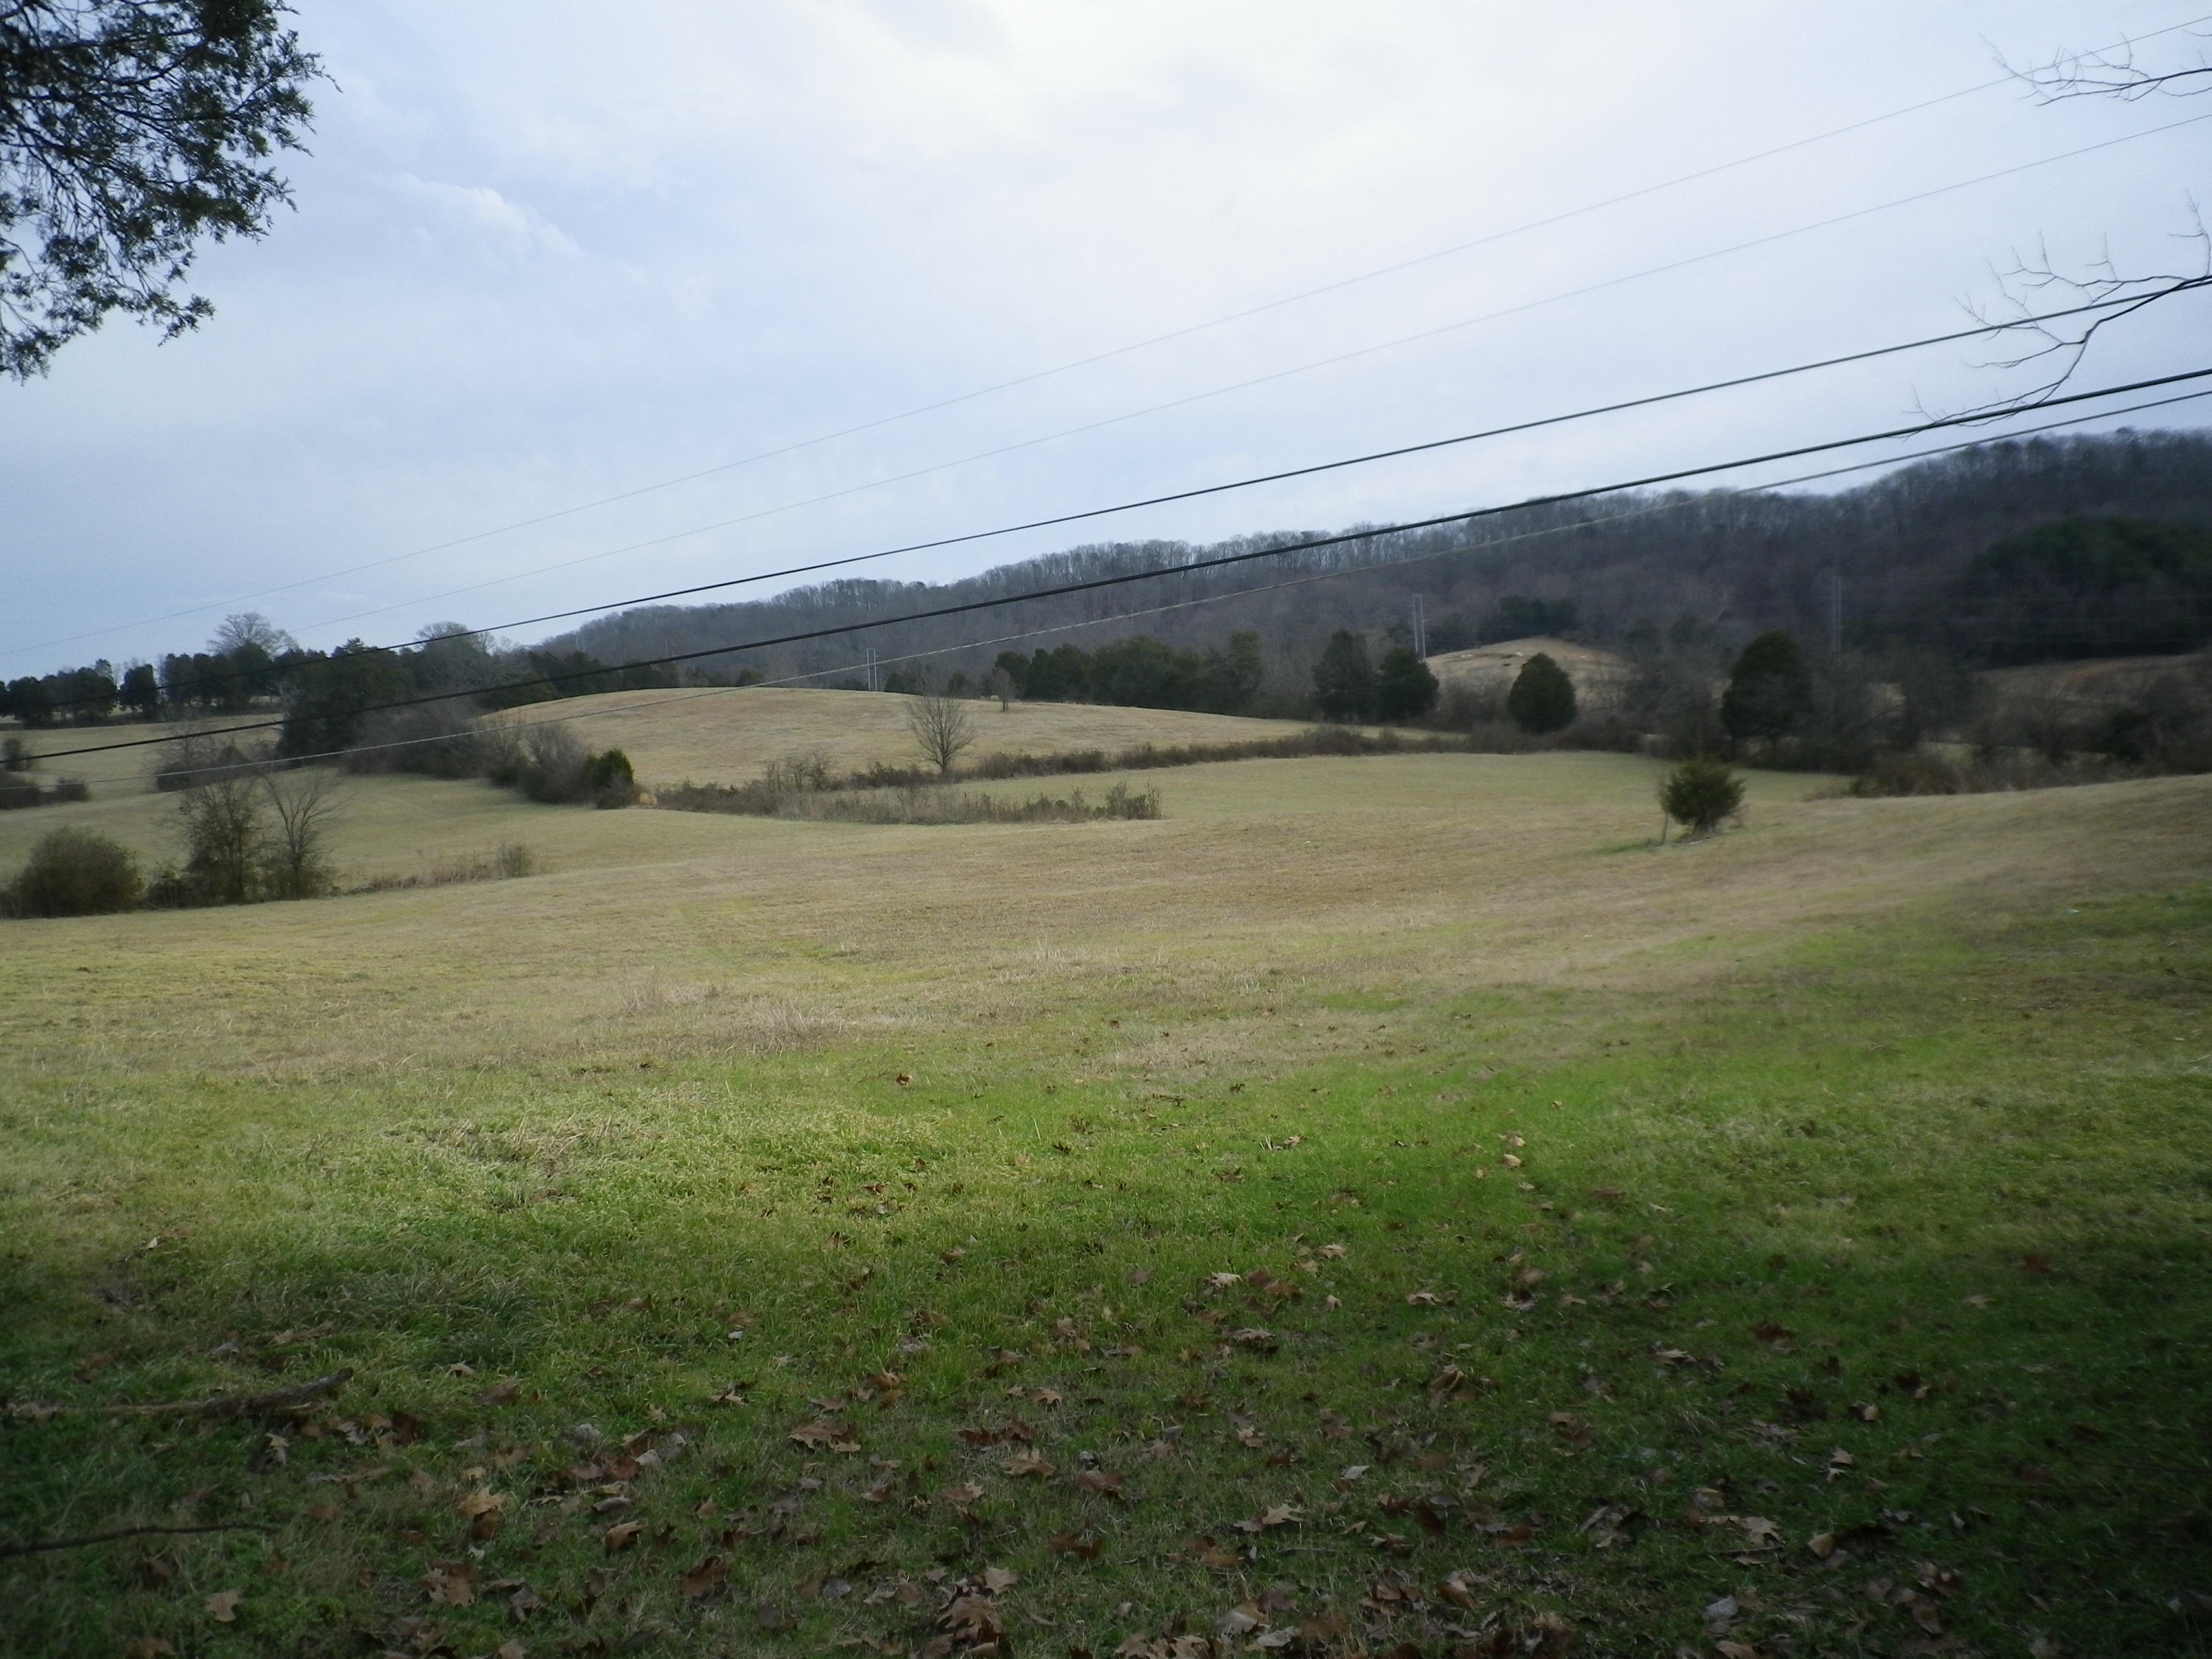 20180123182104737611000000-o Listings anderson county homes for sale